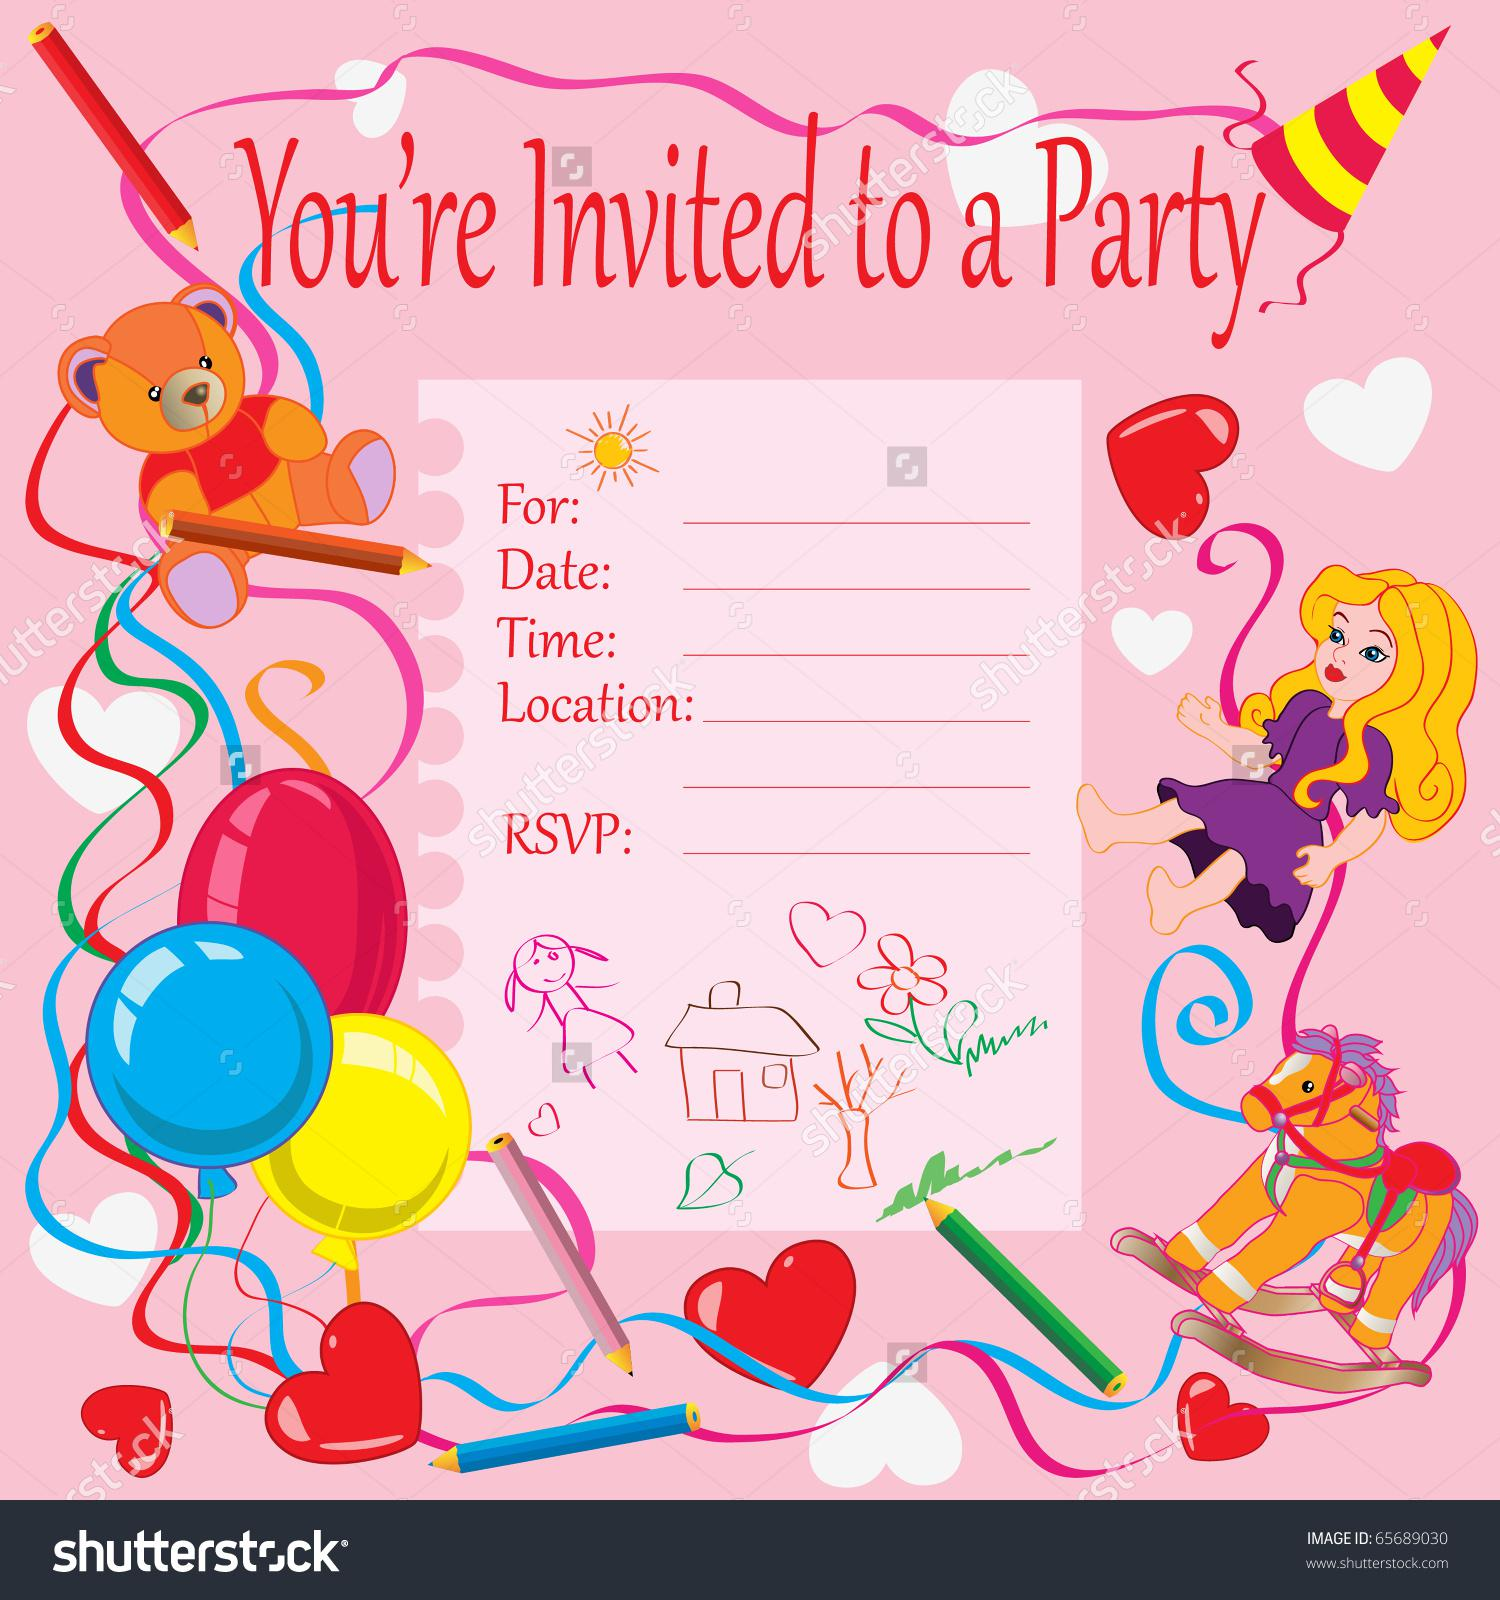 4 step make your own birthday invitations free sample printable printable invitation card for birthday party for kids filmwisefo